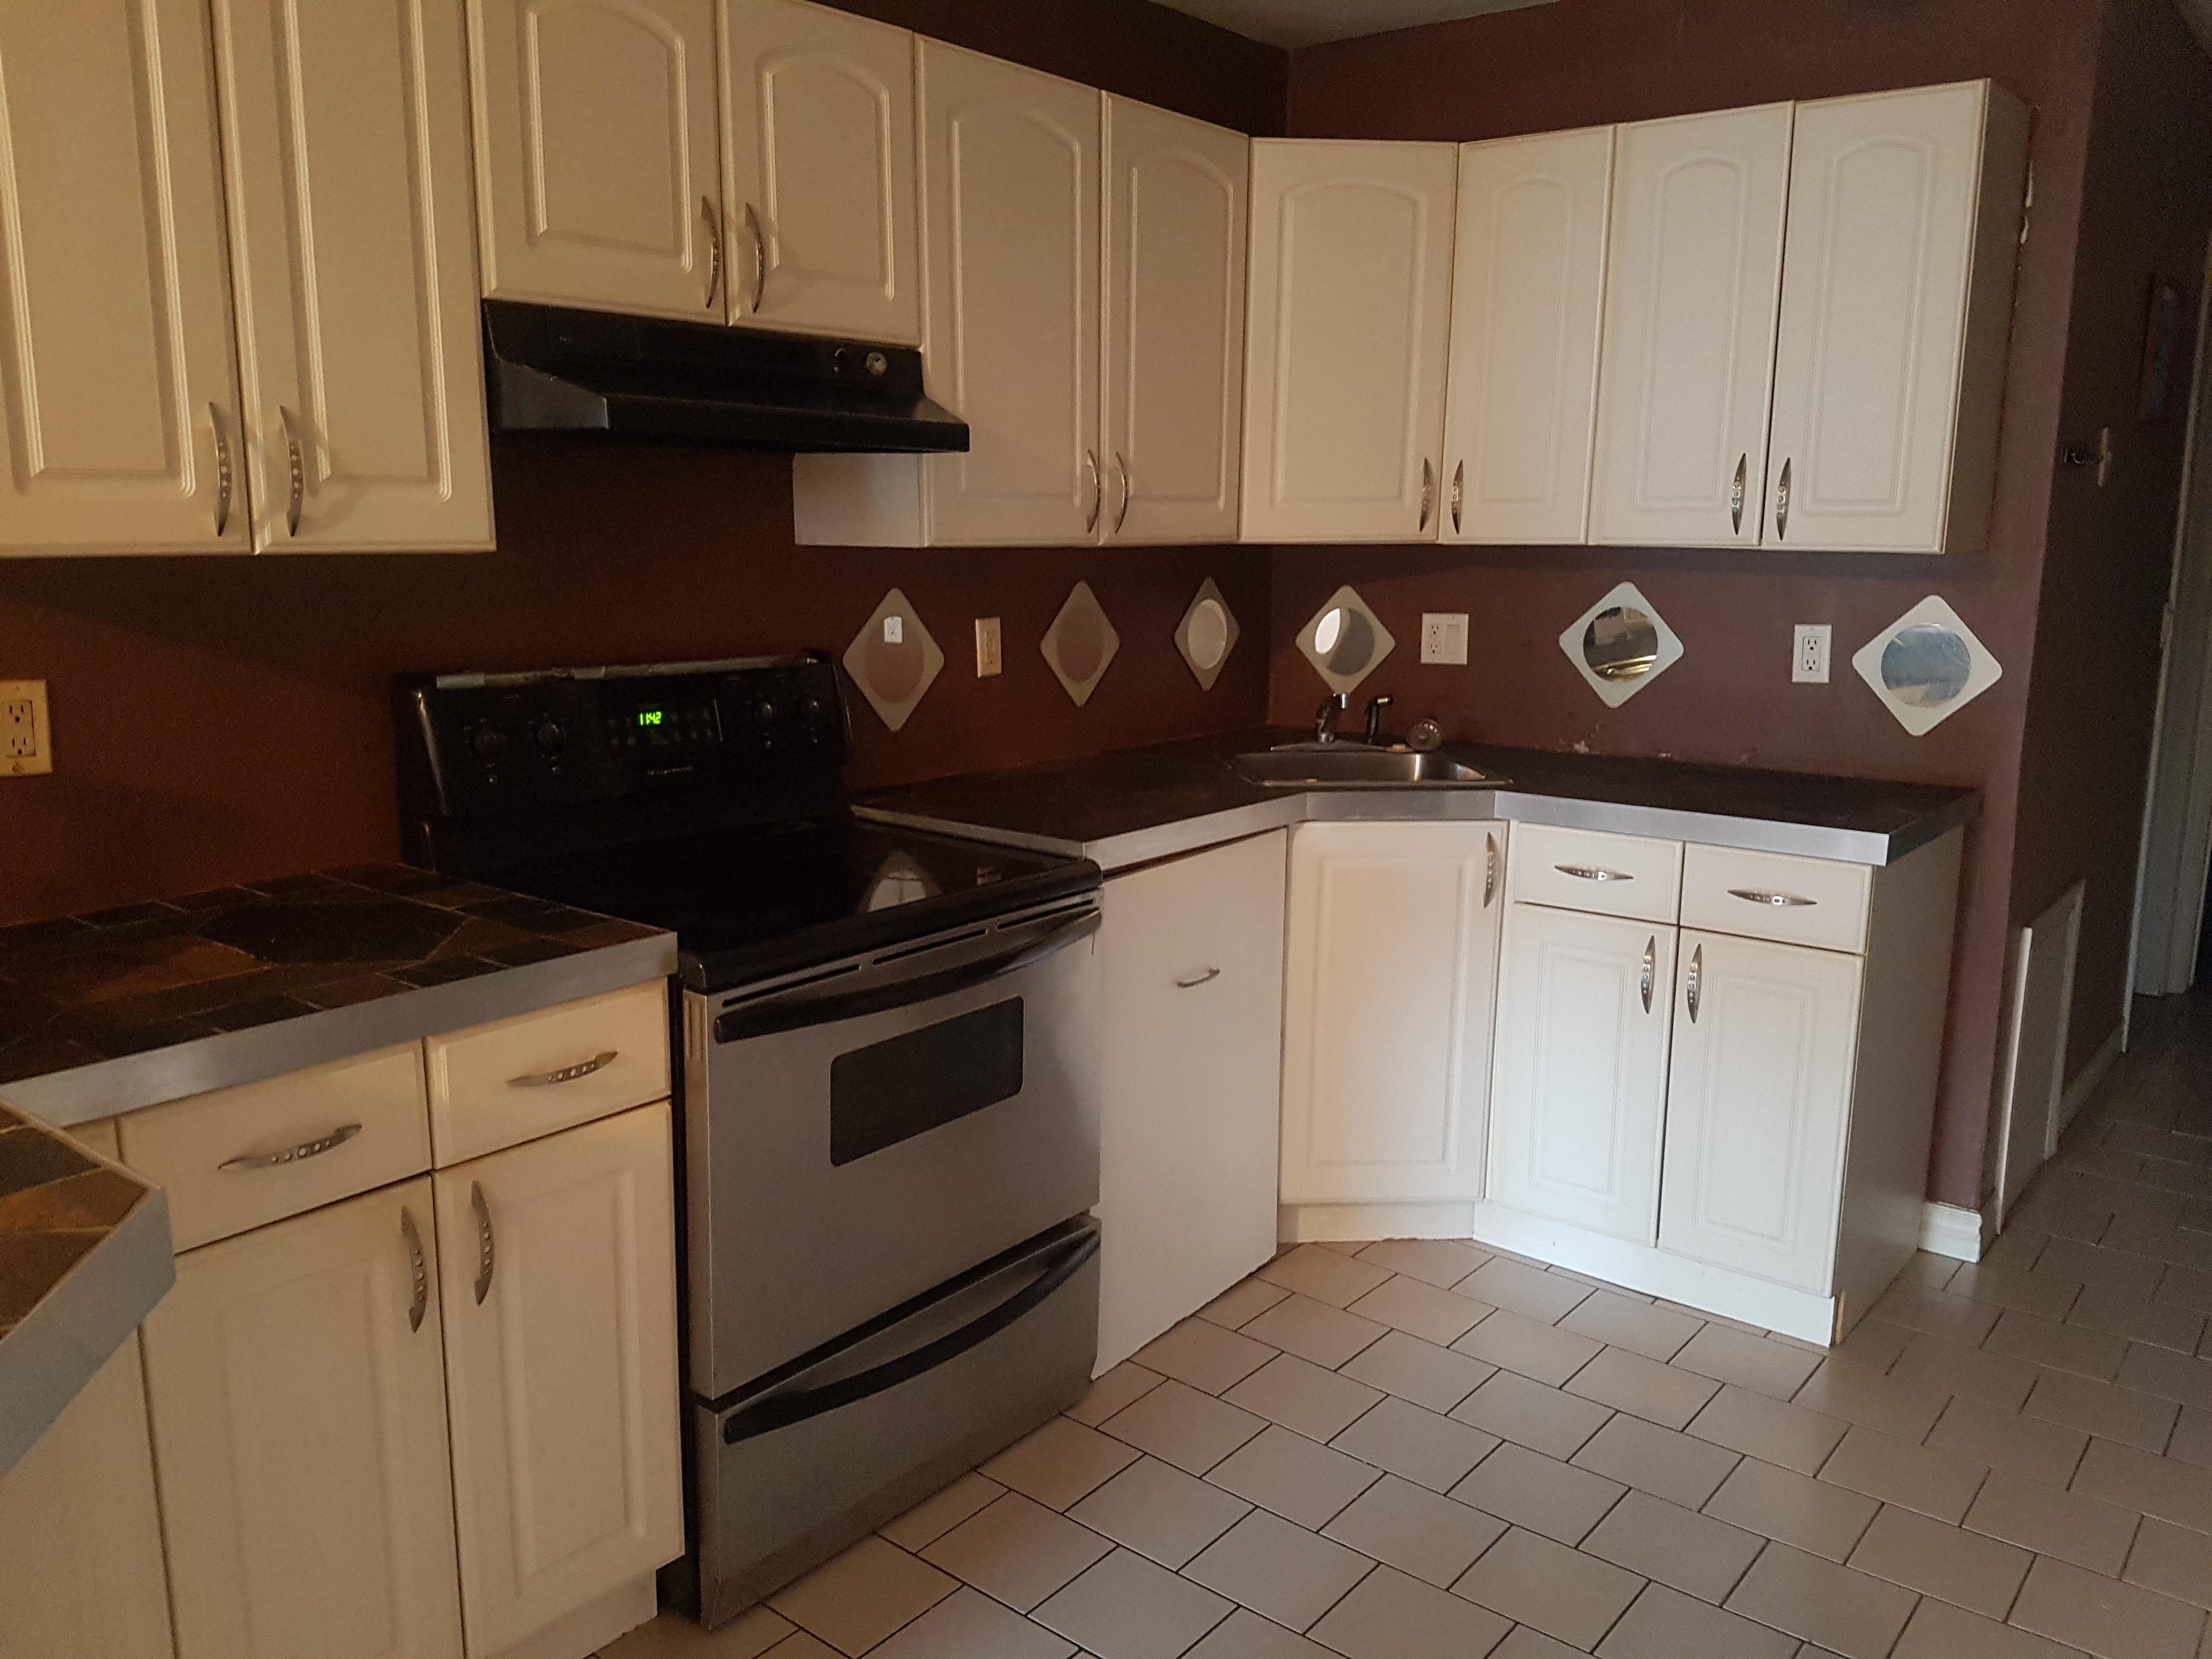 HIP 1 BEDROOM UPPER UNIT WITH GORGEOUS BACKYARD